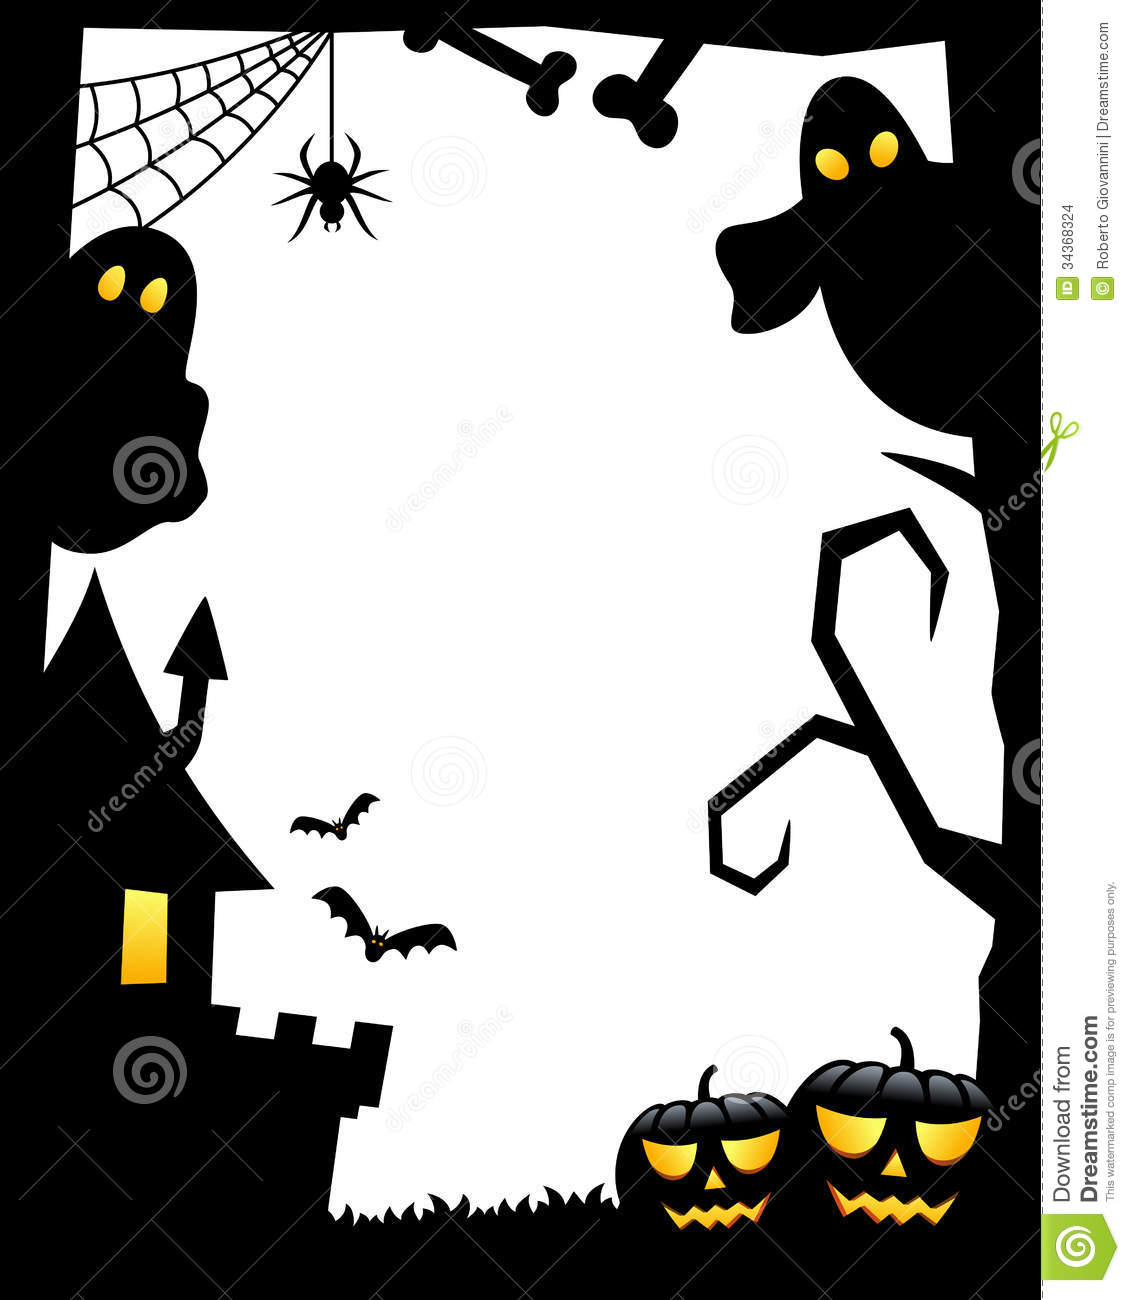 Haunted clipart silhouette #9